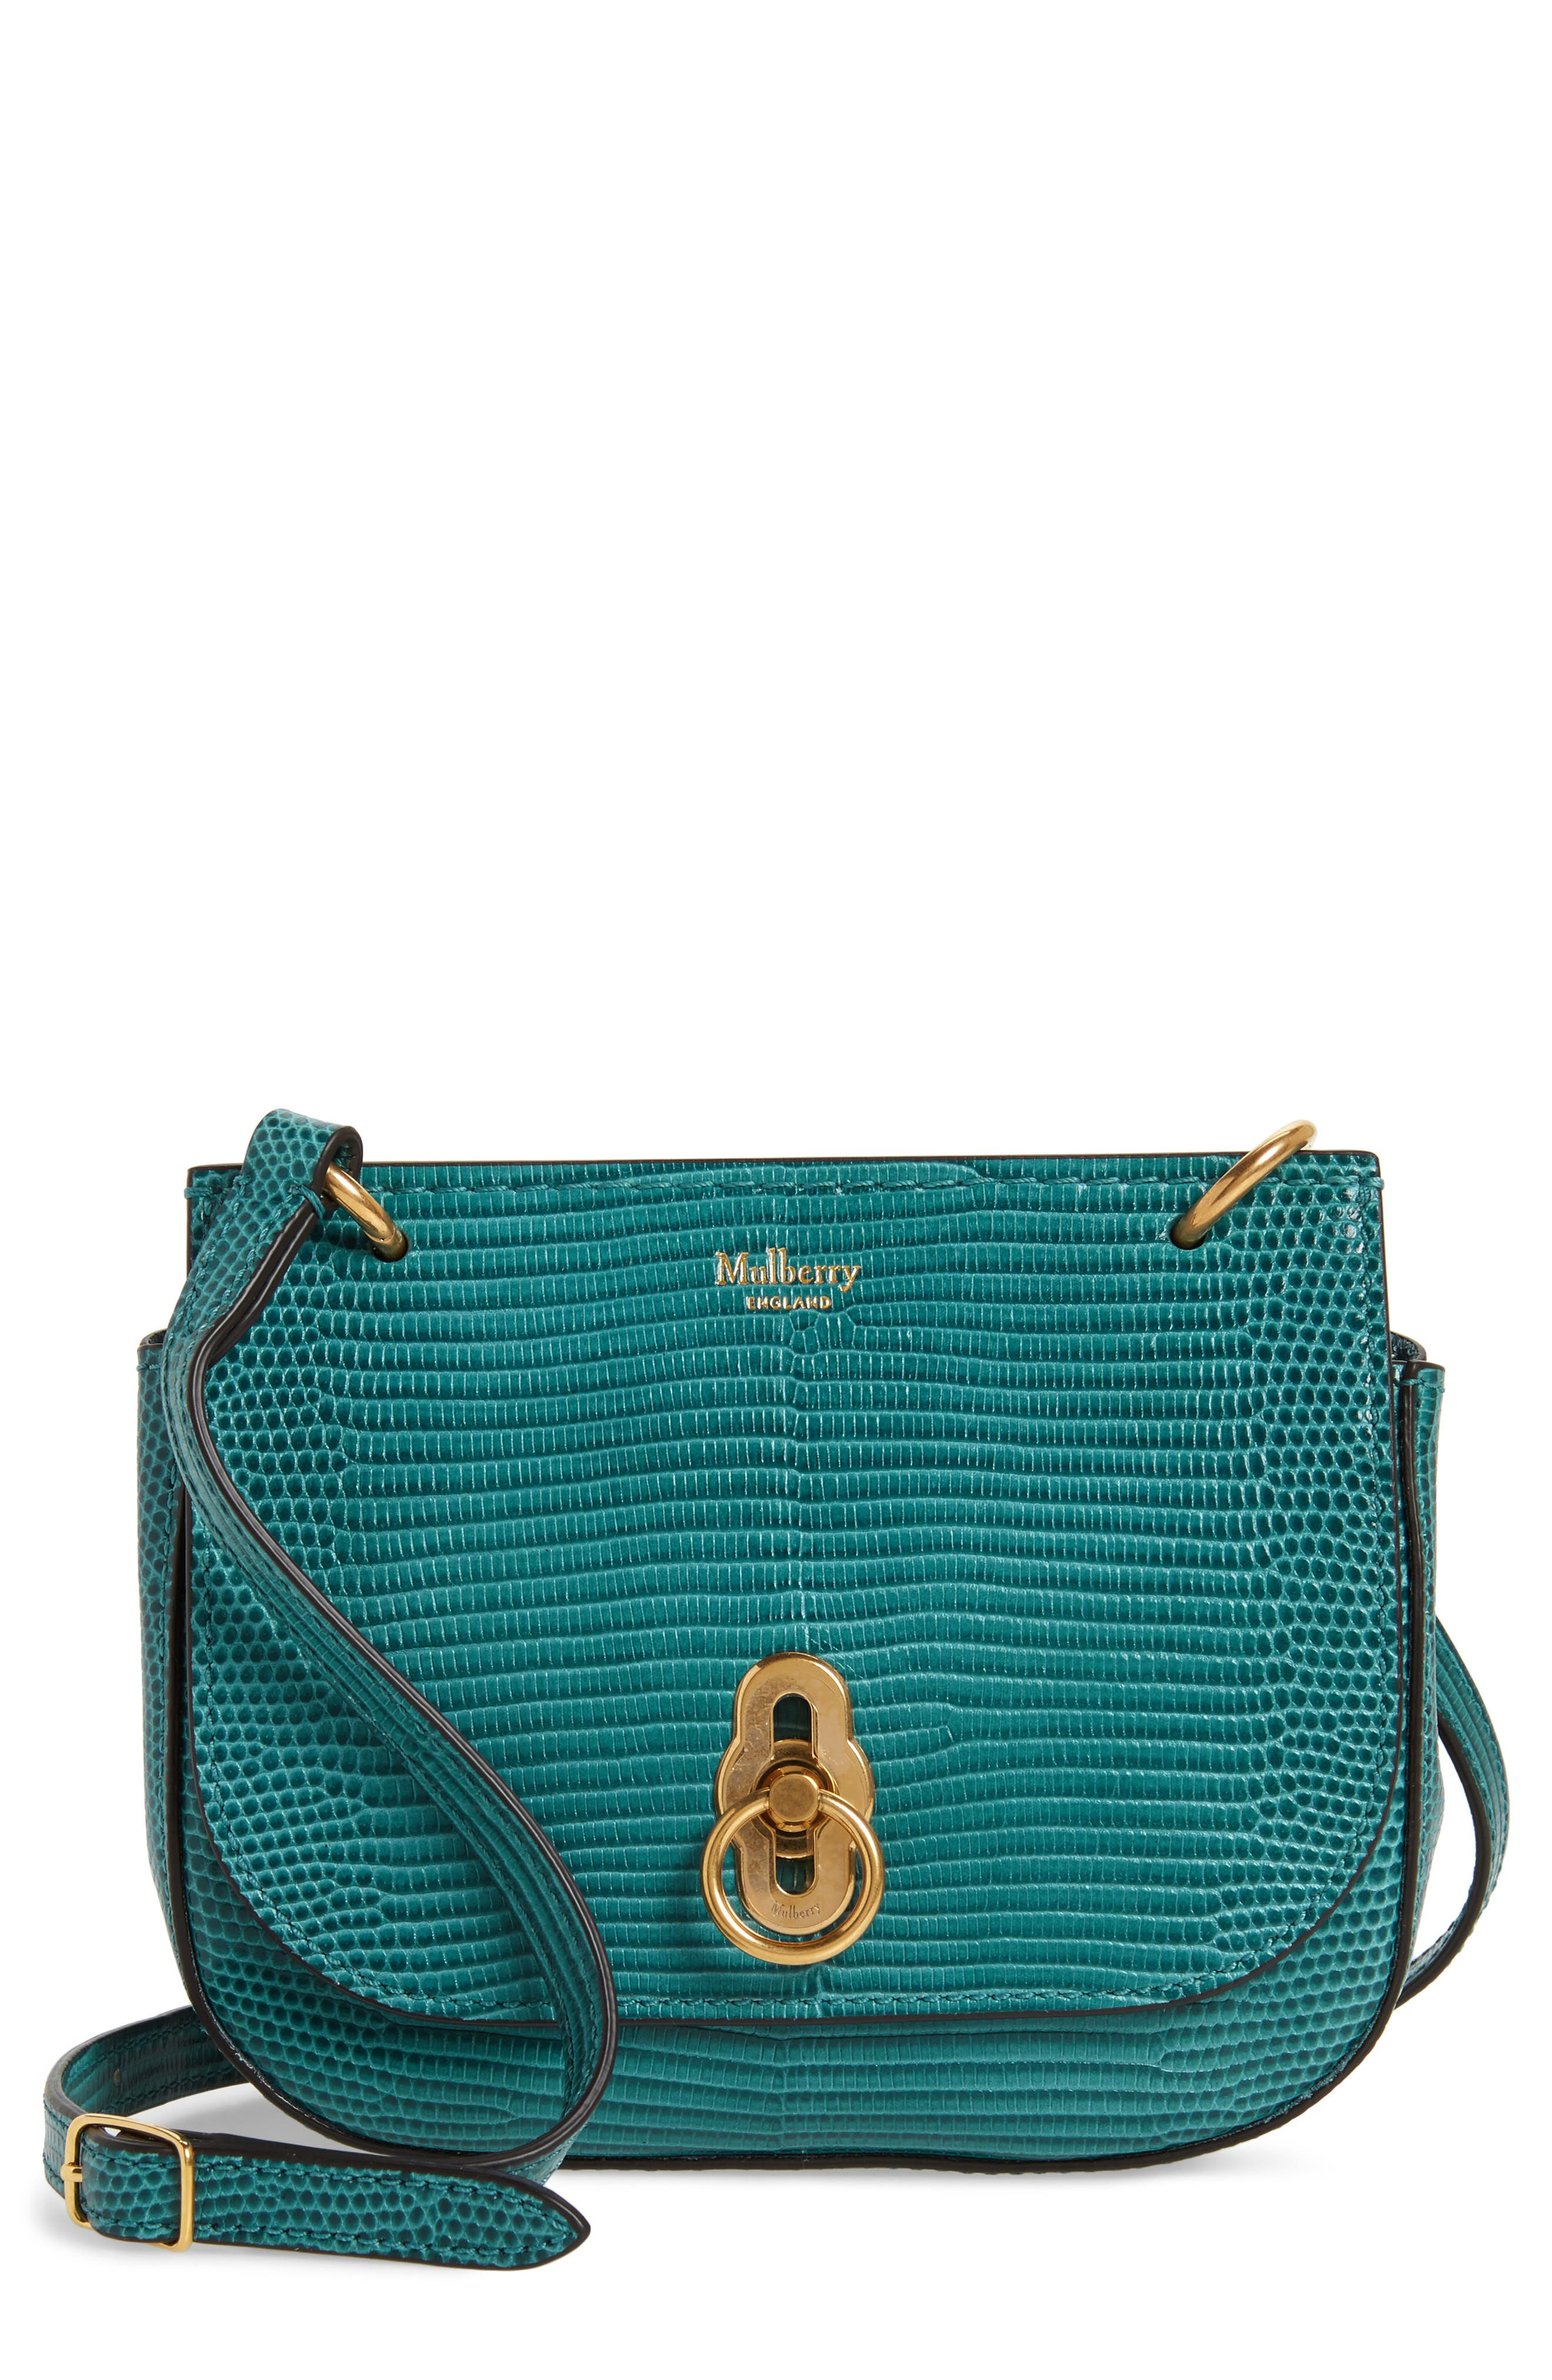 Mulberry Mini Amberley Reptile Embossed Leather Crossbody Bag